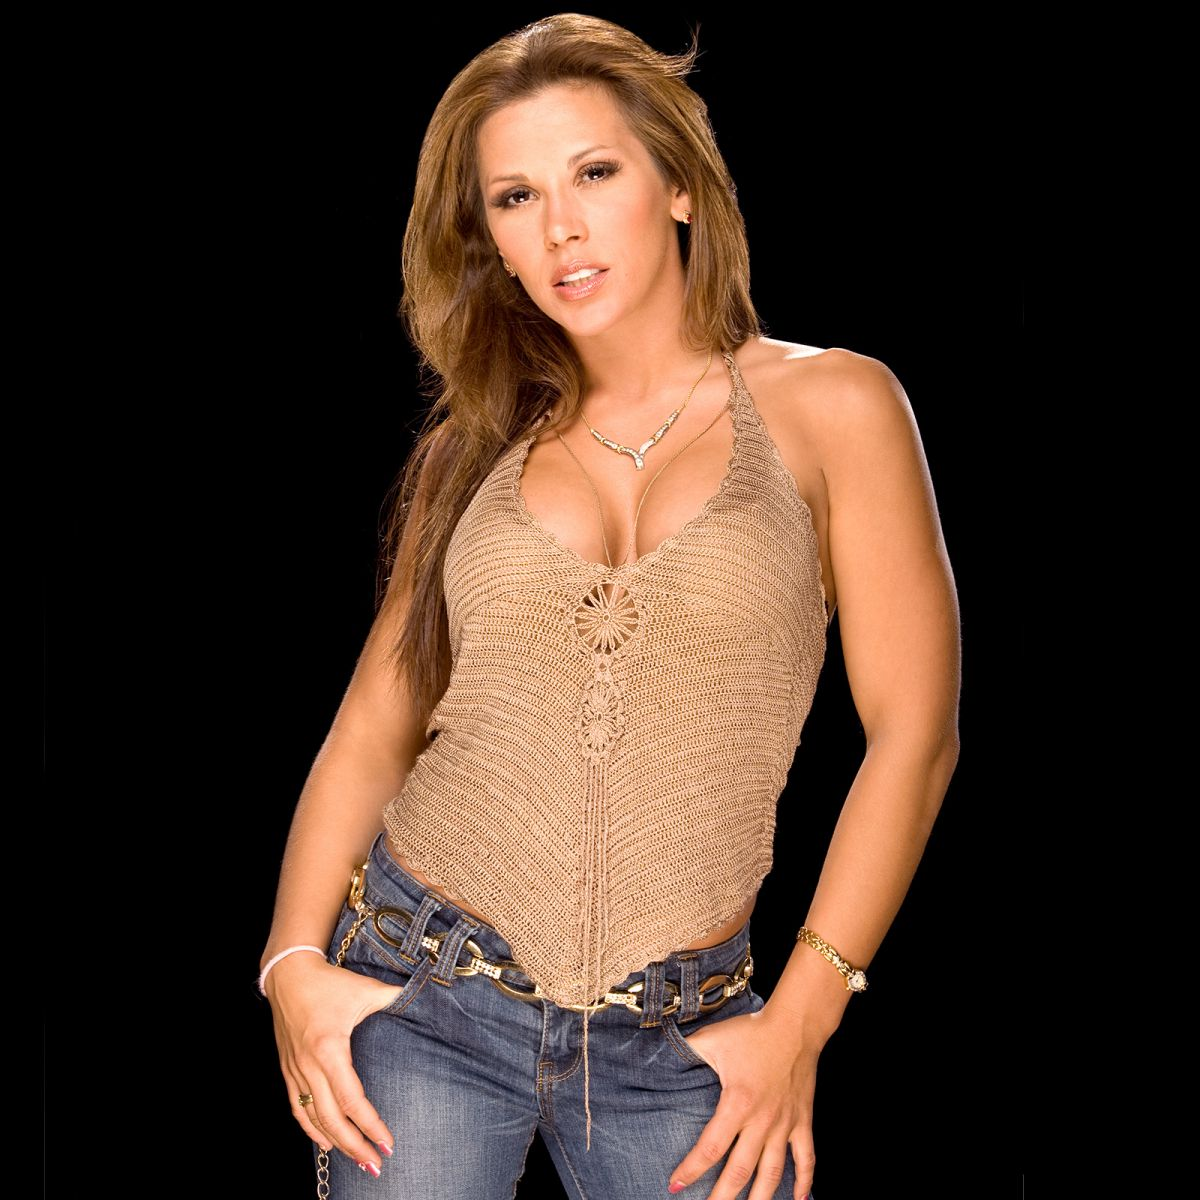 how tall is mickie james